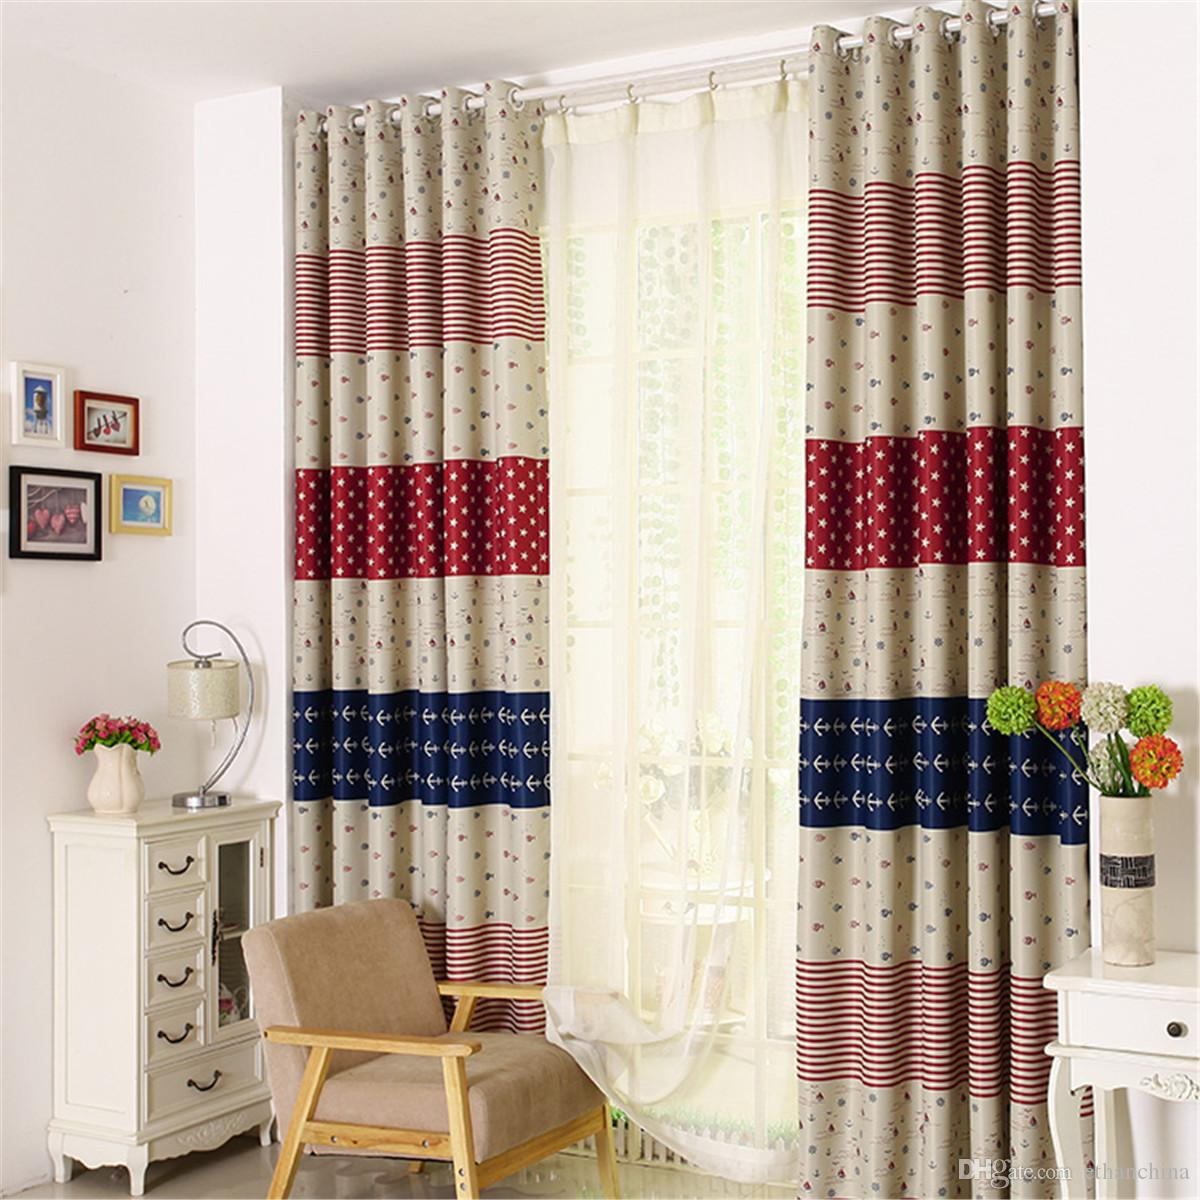 Cheap Blackout Curtains for Inspiring Home Decorating Ideas: Lined Blackout Curtains | Cheap Blackout Curtains | Buy Blackout Curtains